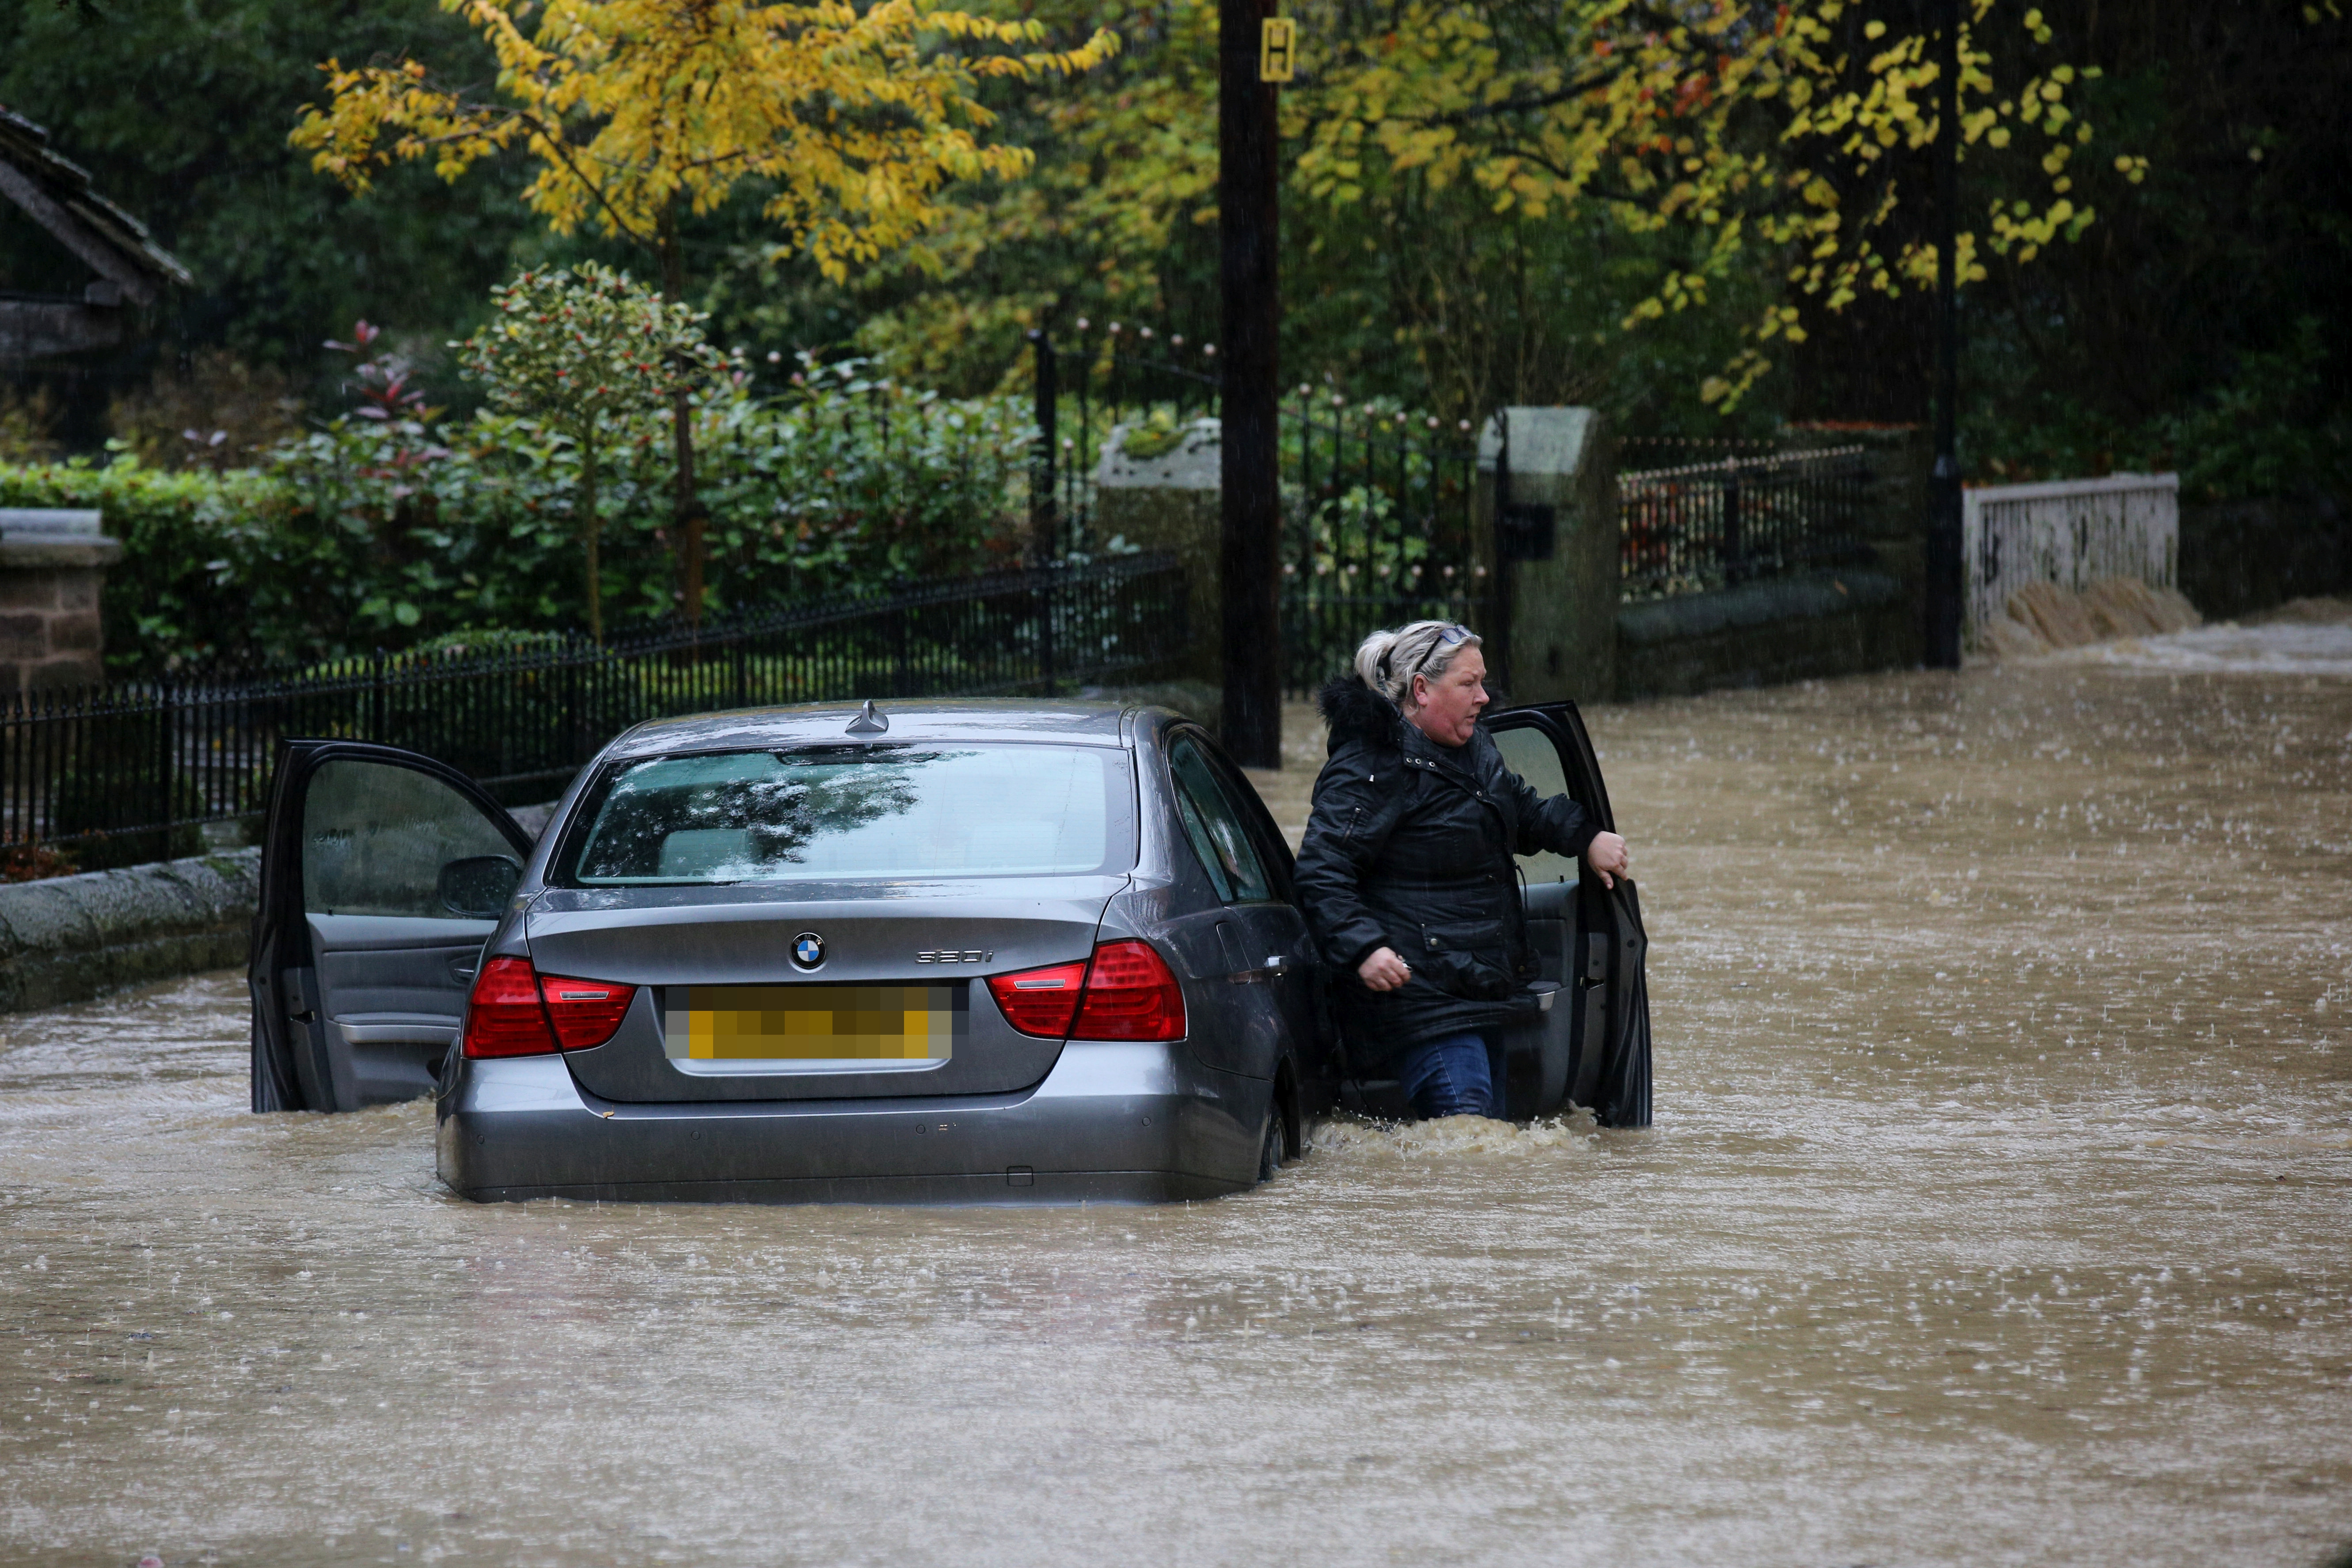 A BMW driver gets stuck trying to drive through deep flood water as it rises in the village of Whiston near Sheffield